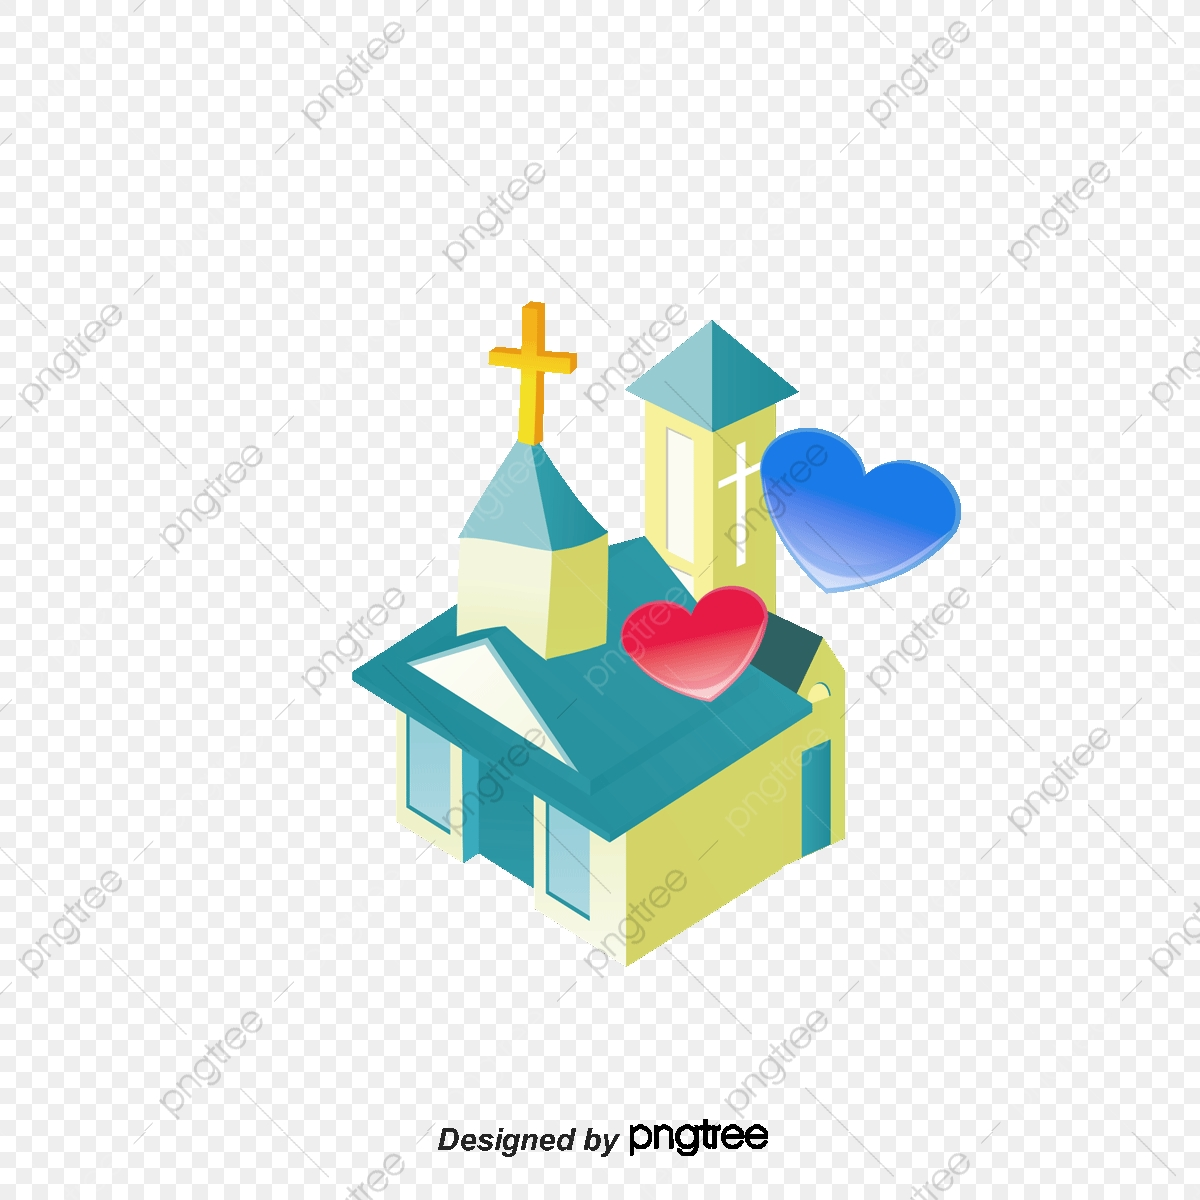 Church Png Vector Material, Building, Hearts, Cross PNG and Vector.